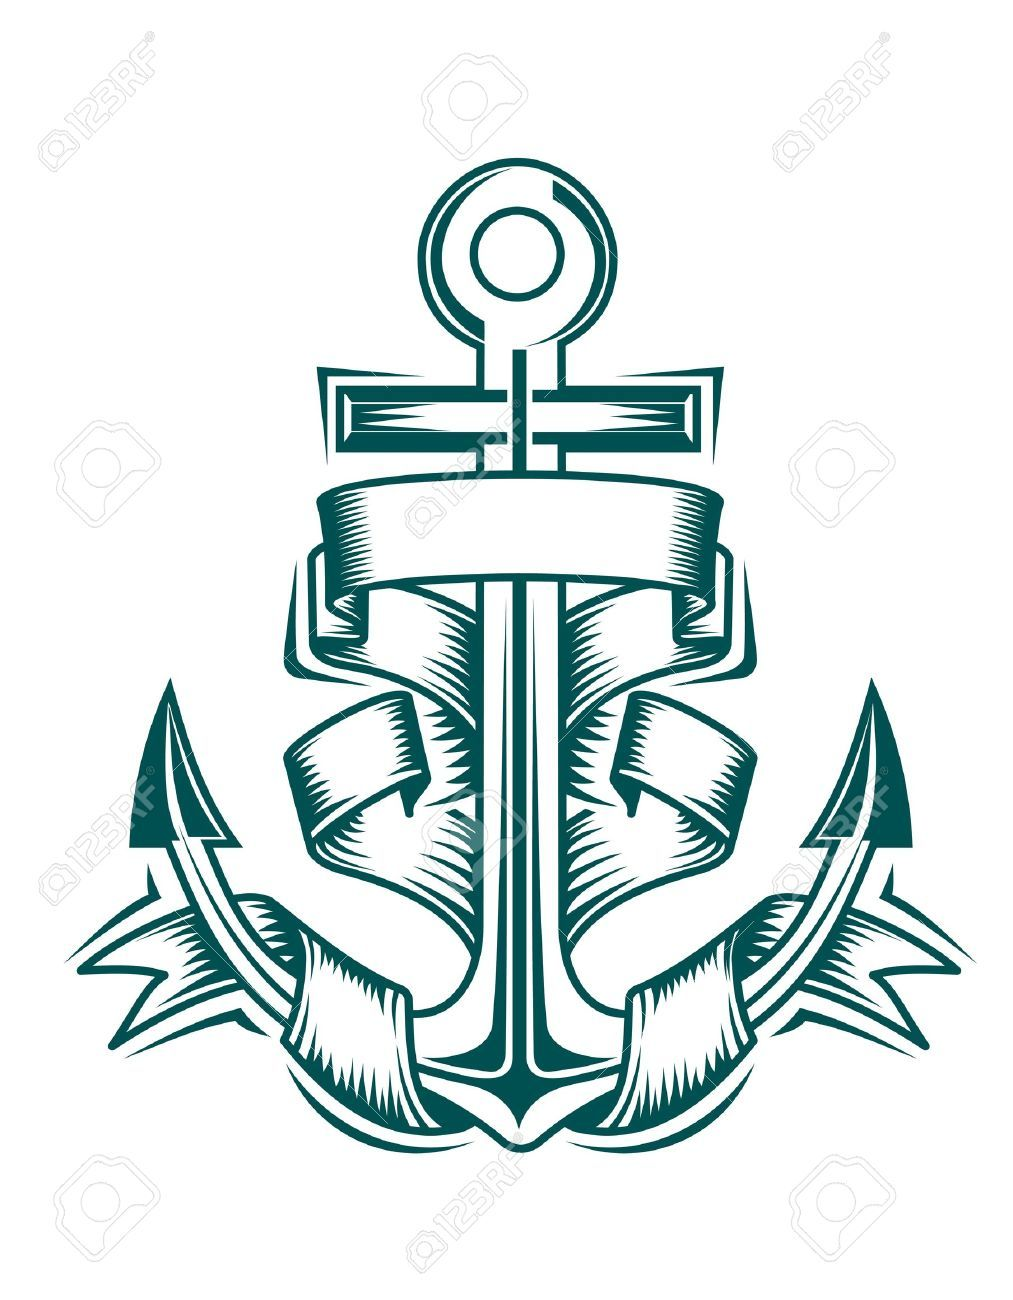 Ship anchor drawing at getdrawings free for personal use ship 1013x1300 ship anchor logo nautical cp pinterest anchor logo ship thecheapjerseys Images